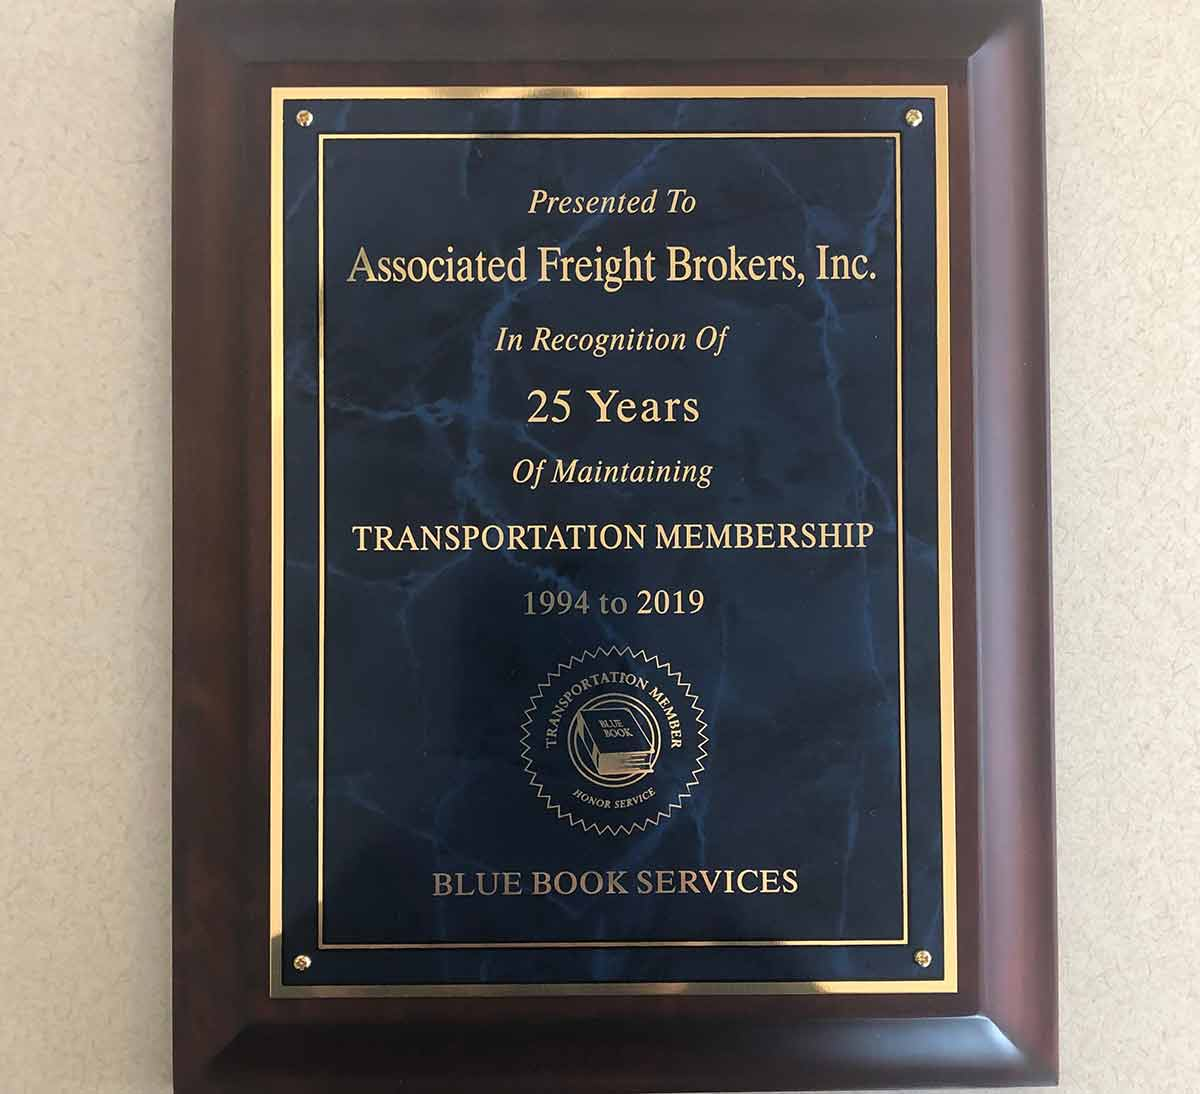 CELEBRATING 31 YEARS OF MEMBERSHIP WITH THE BLUE BOOK!